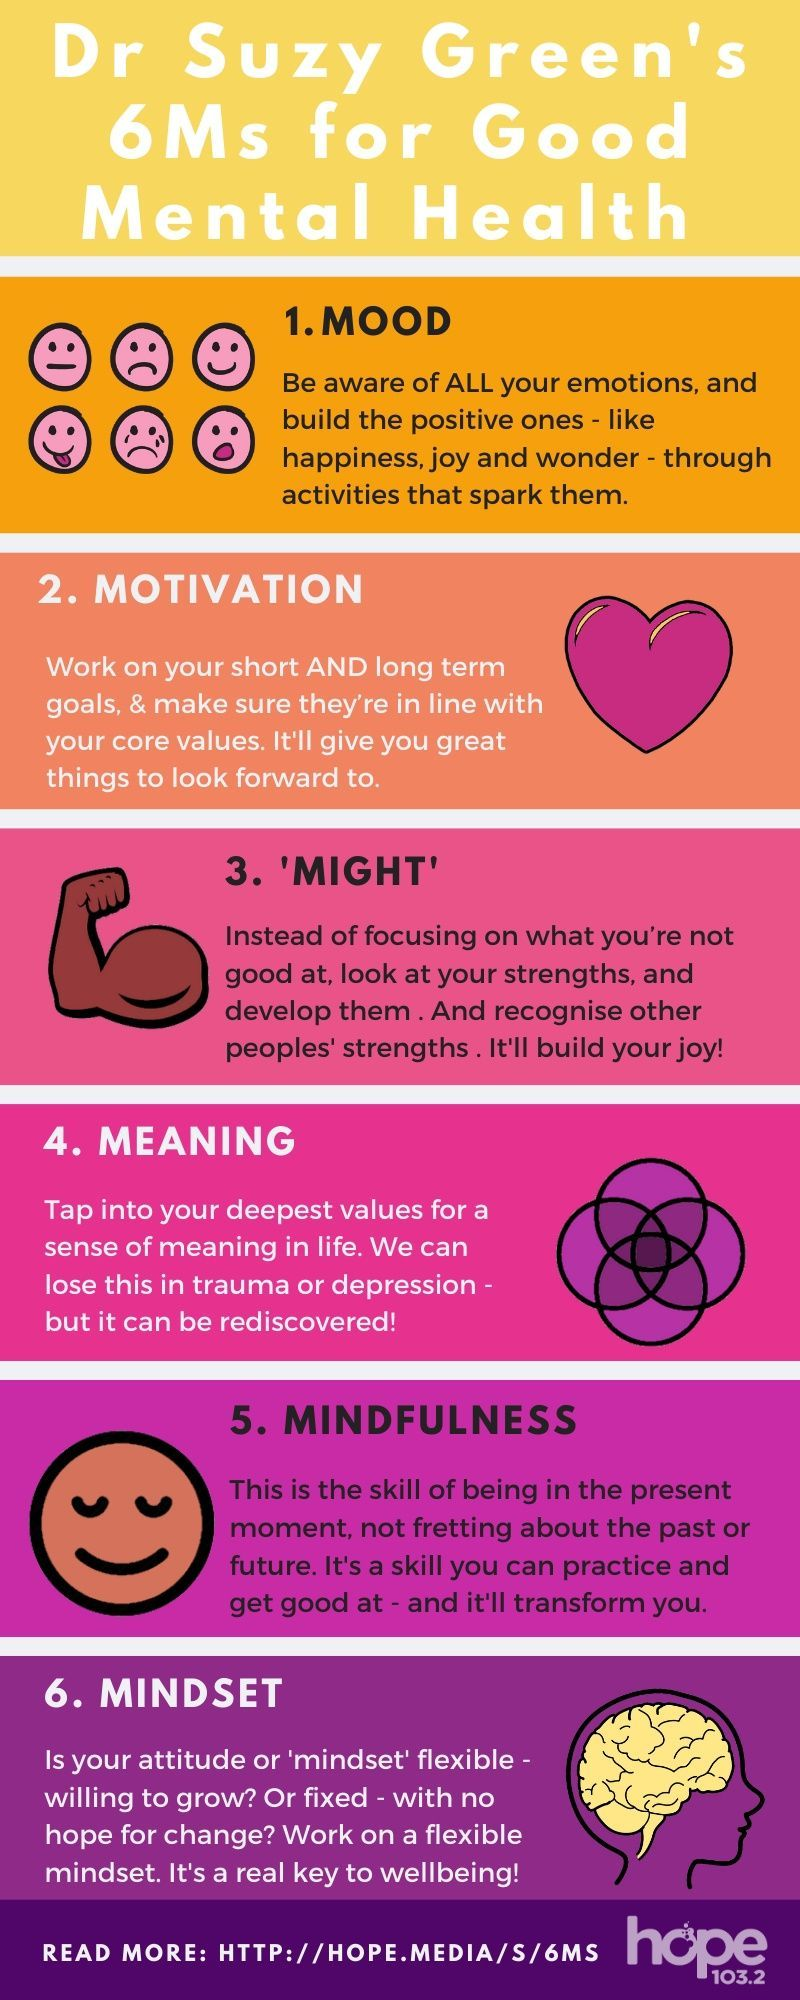 These Self Care tips will make a world of difference ️